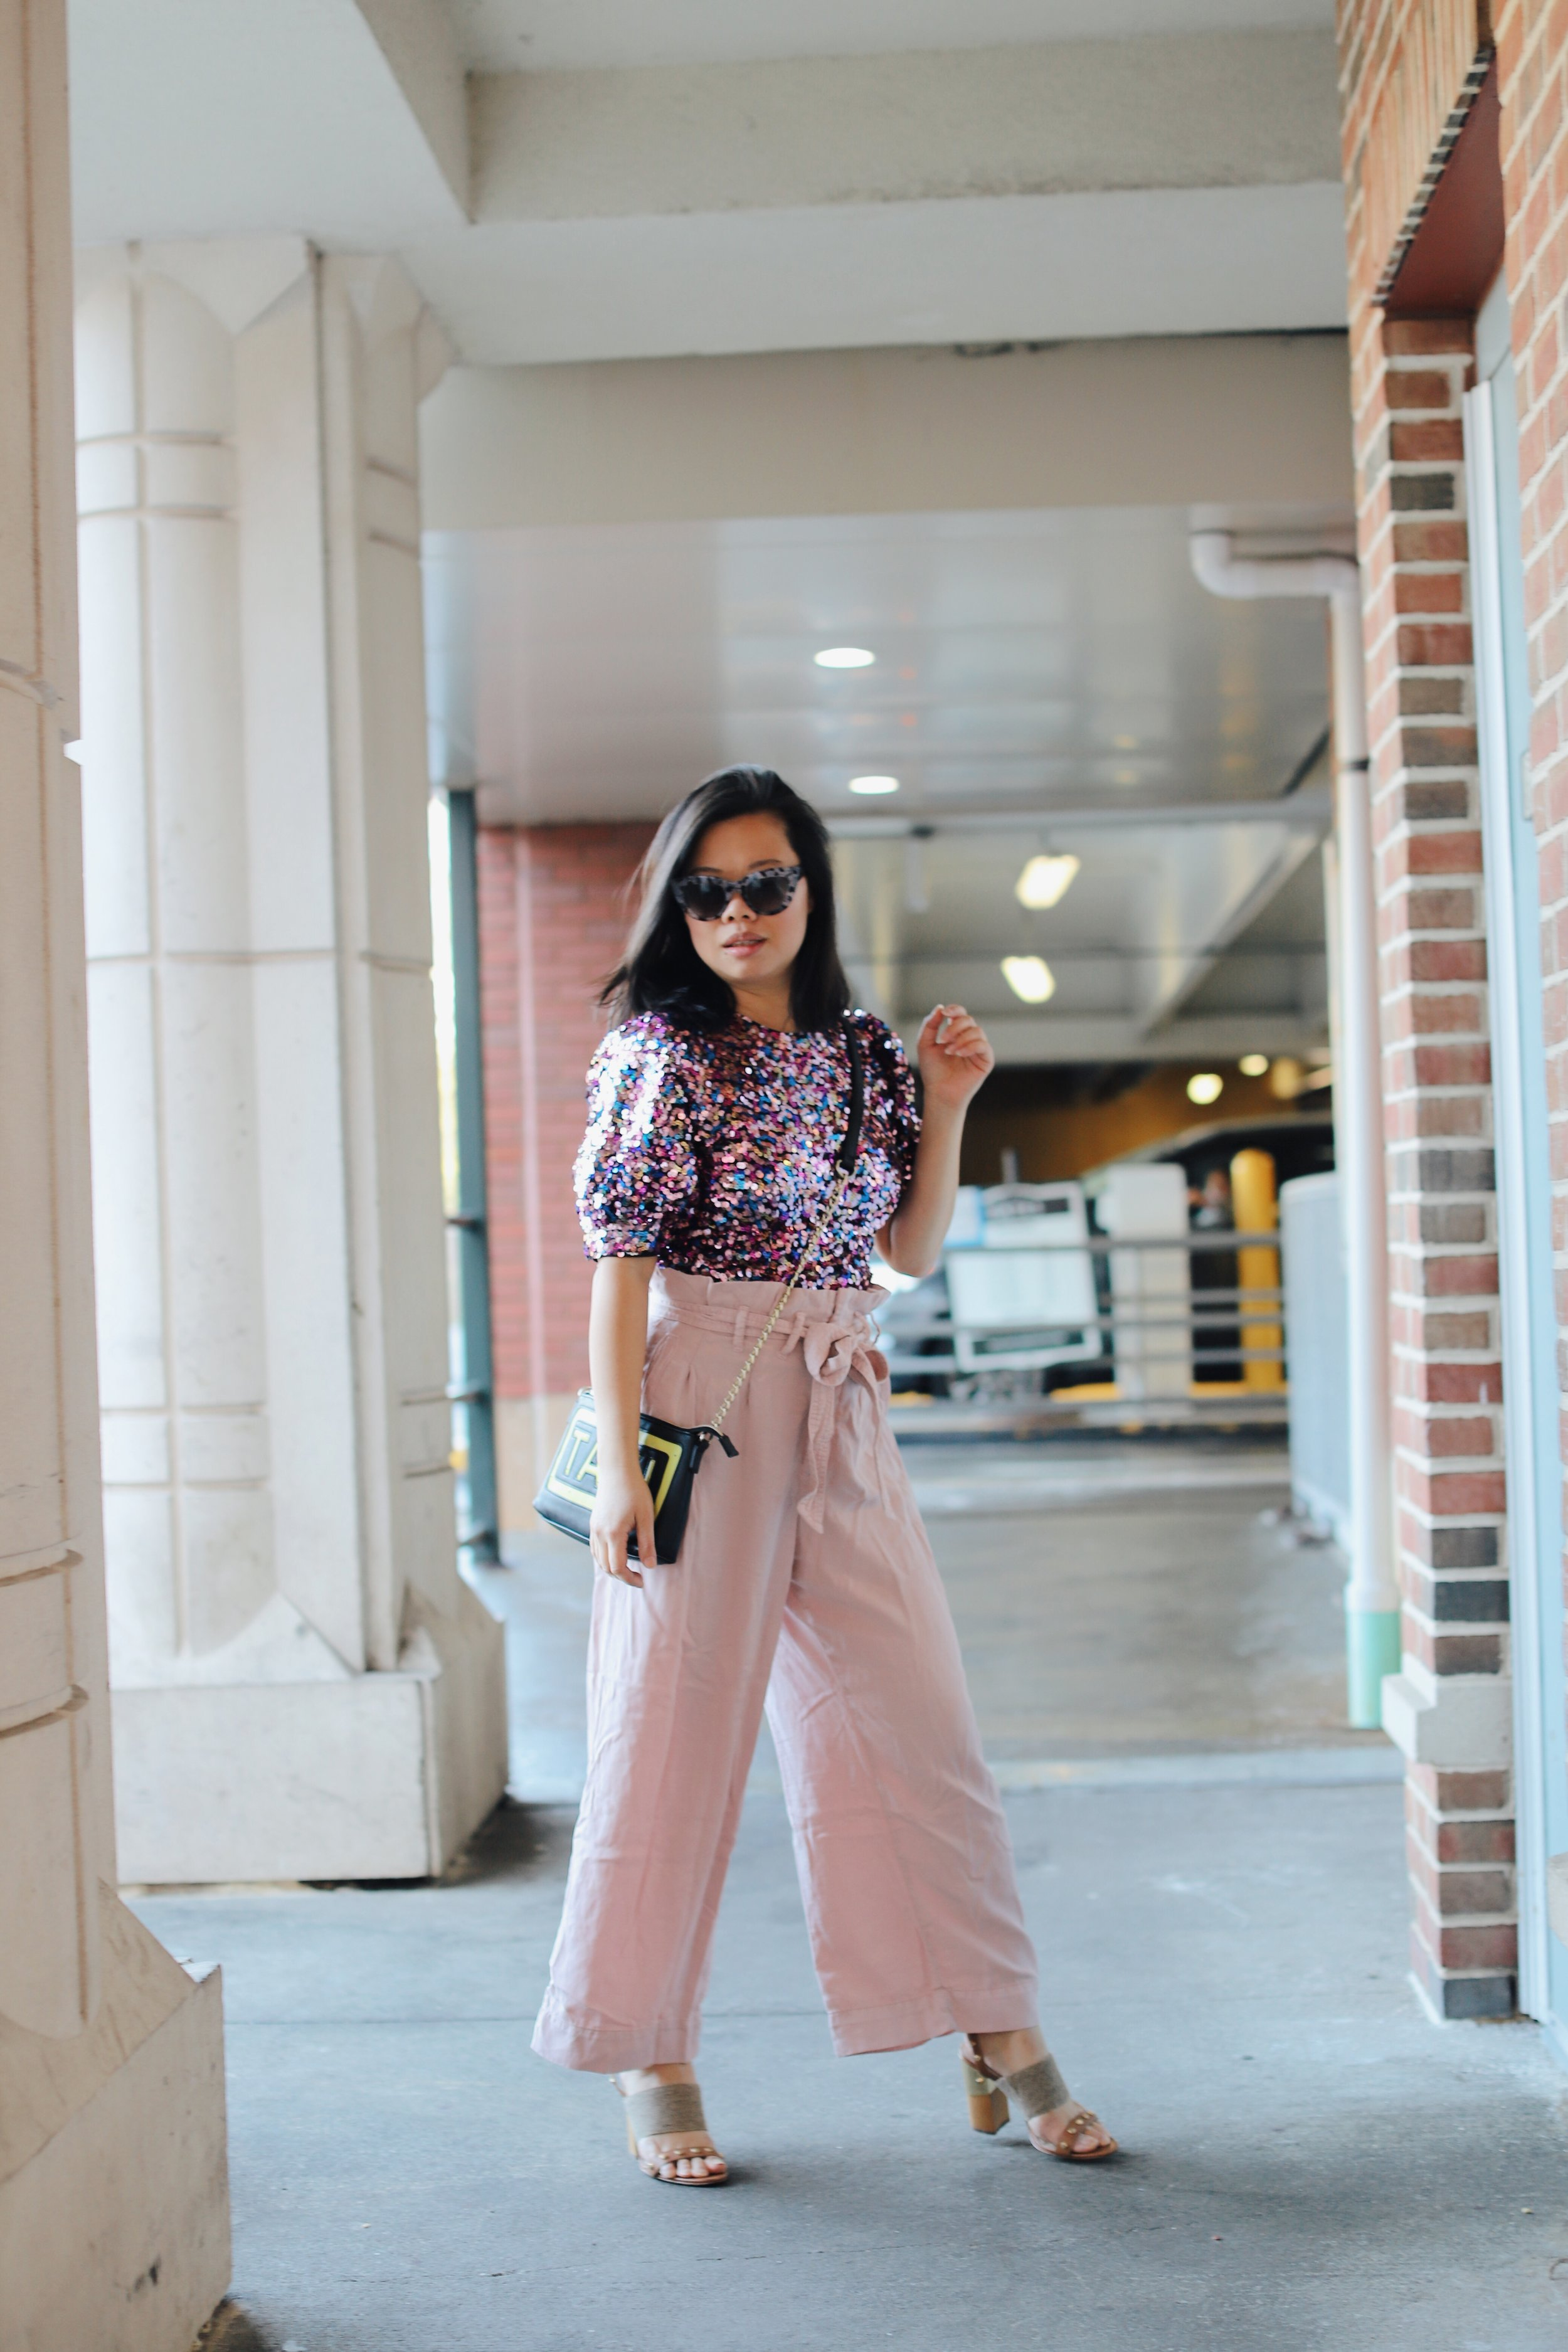 Wearing   Majorelle sequin top     from Revolve,  Anthropologie  pants (old), Louise et Cie shoes from  Nordstrom  (old),  Betsey Johnson  bag (old)